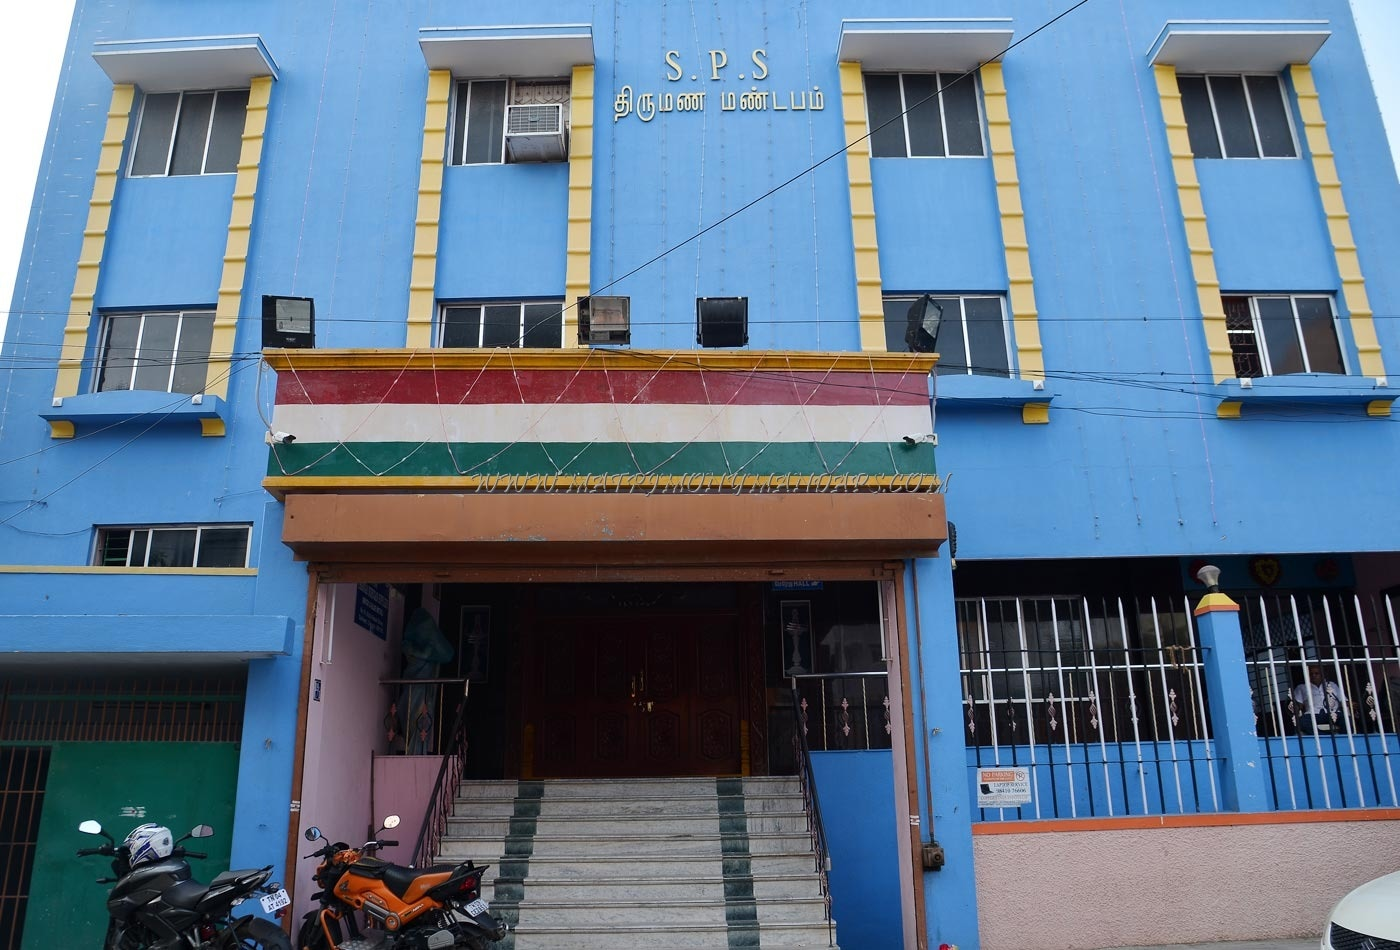 Find the availability of the SPS Thirumana Mandapam (A/C) in Saidapet, Chennai and avail special offers